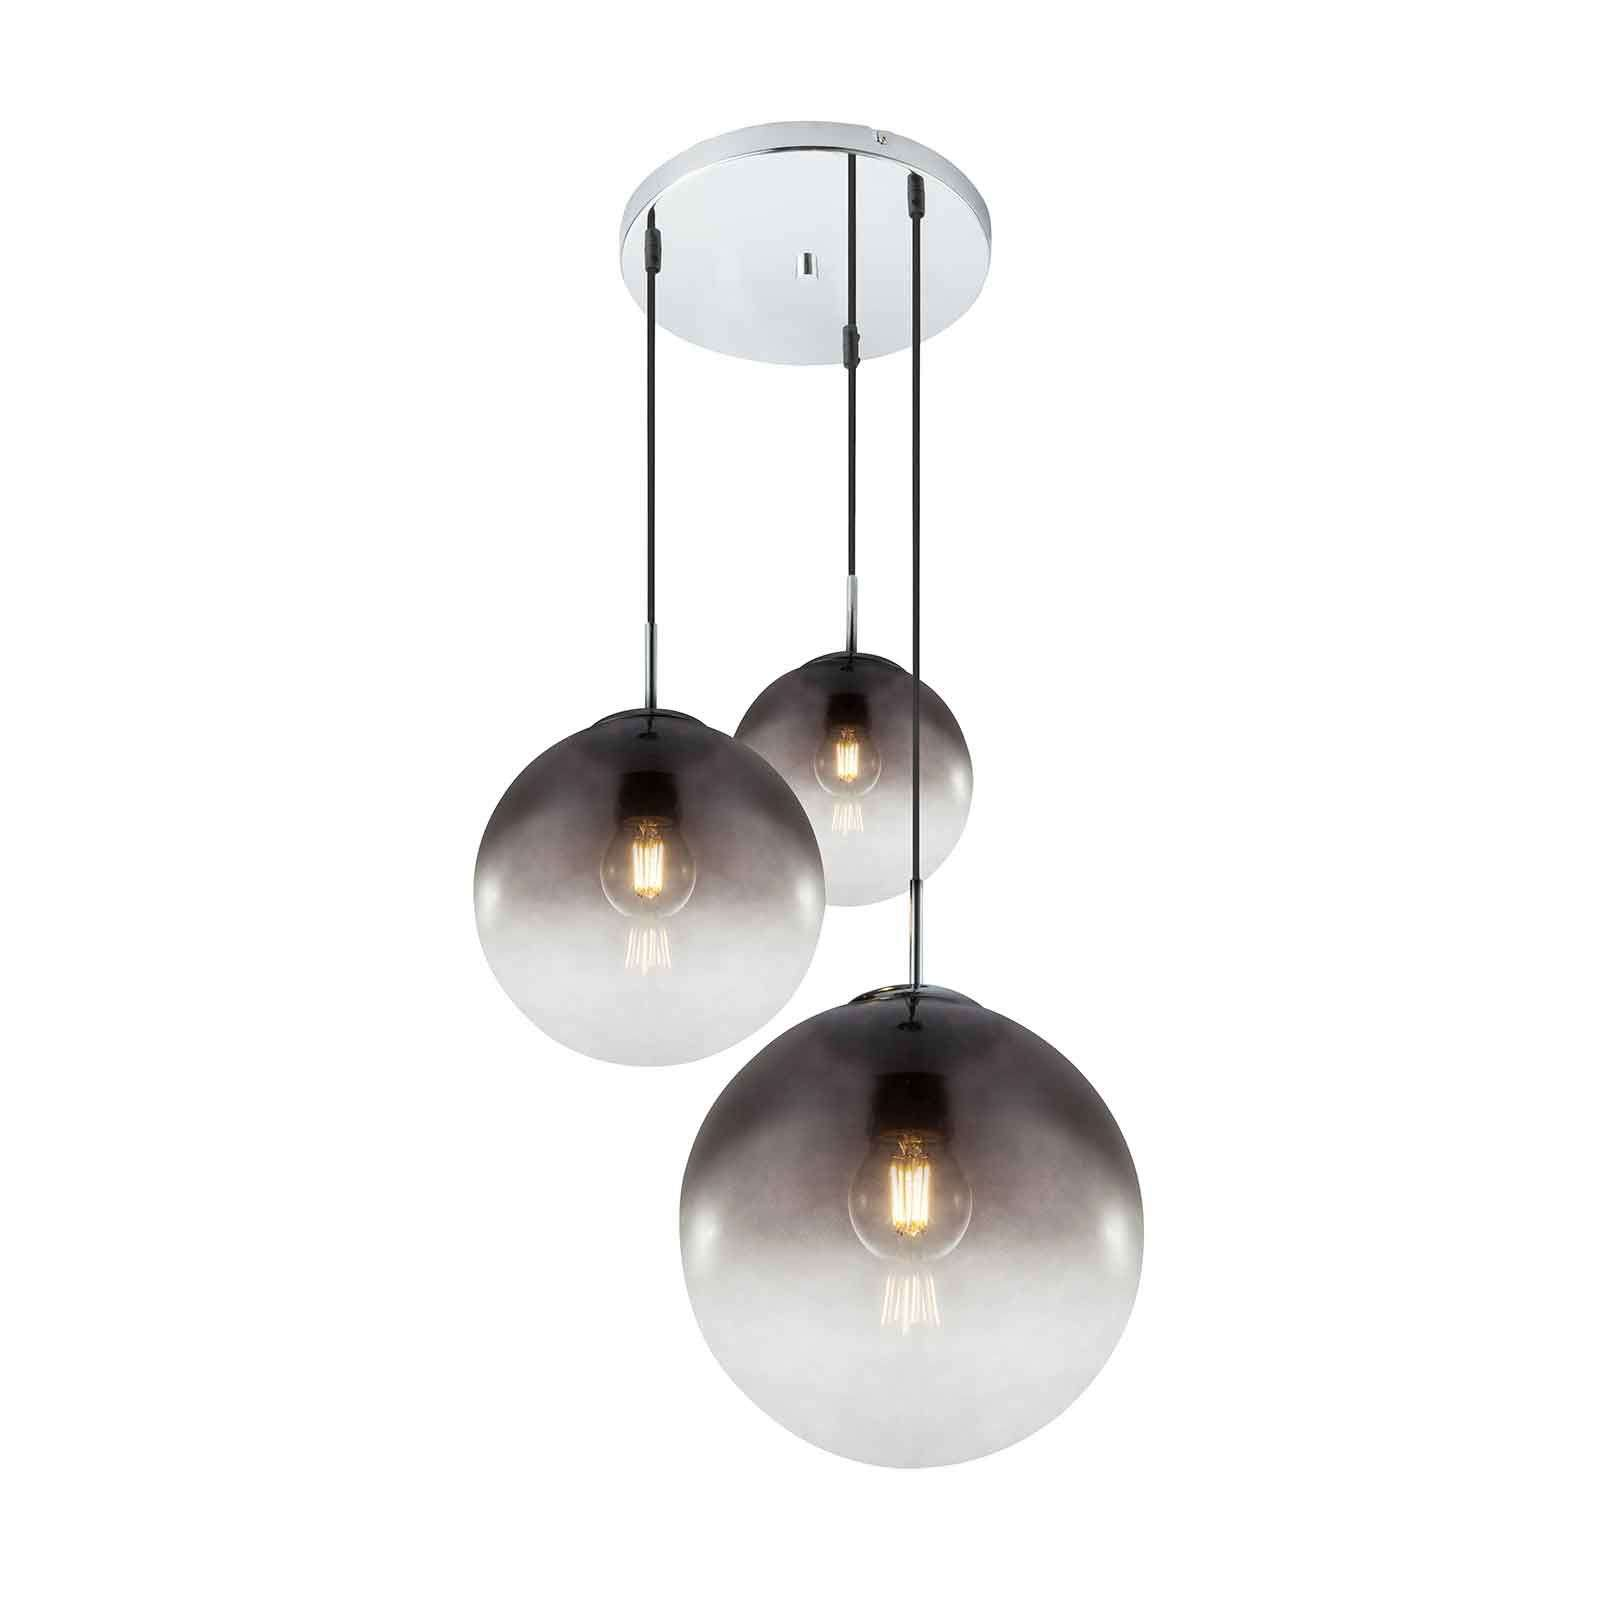 Lindby Robyn glazen hanglamp, 3-lamps